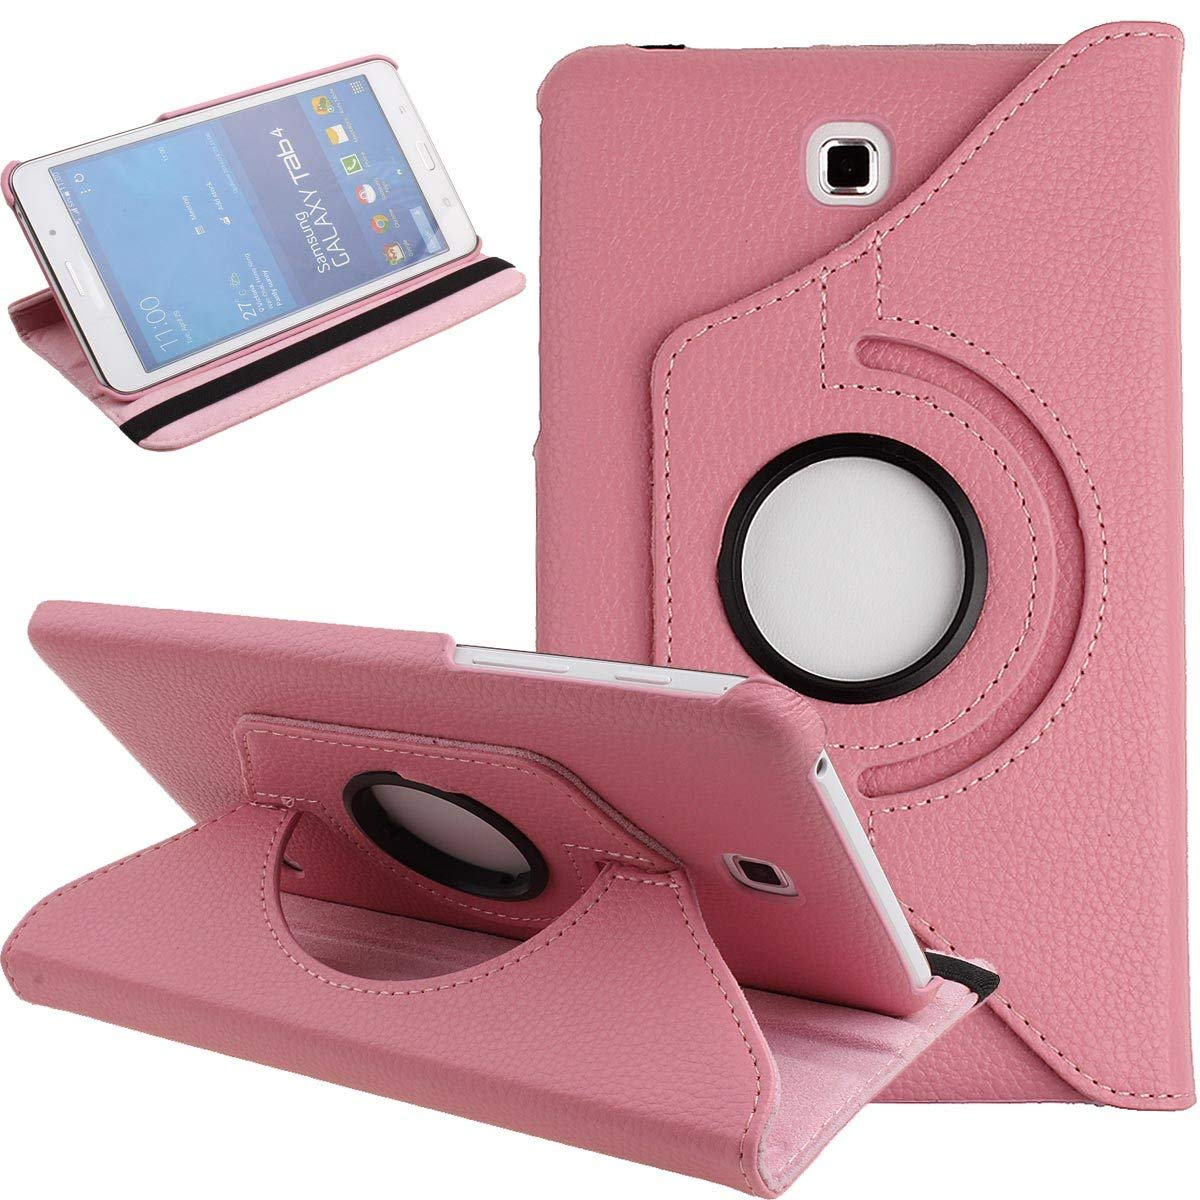 360 Degrees Rotating PU Leather Smart Case Cover for Samsung Galaxy Tab 4 7.0 Inch(SM-T230 SM-T231 T235 ) Tablet Protective Case360 Degrees Rotating PU Leather Smart Case Cover for Samsung Galaxy Tab 4 7.0 Inch(SM-T230 SM-T231 T235 ) Tablet Protective Case